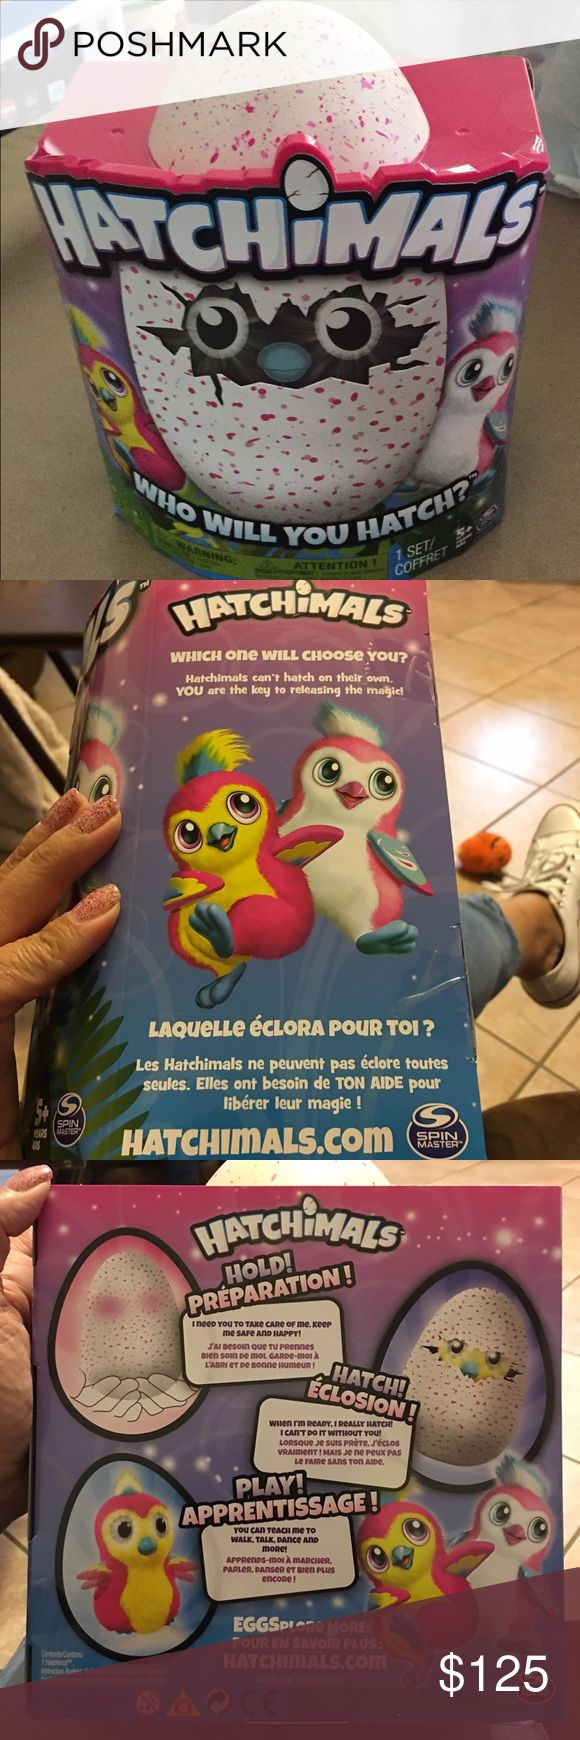 HATCHIMALS Pink HATCHiMALS most wanted Christmas gift this year. I am not gonna lie I am trying to make a profit. My son was in a car accident on the highway. All he is asking for Christmas is to have his car fixed. So I need cash to do so. And no our insurance will not cover since the other car didn't stop and we don't have full coverage on his car. Pic of his damage shown. No trades please. Thank you. Happy Holidays 🎄Will ship out same day. No trading. spin master Other